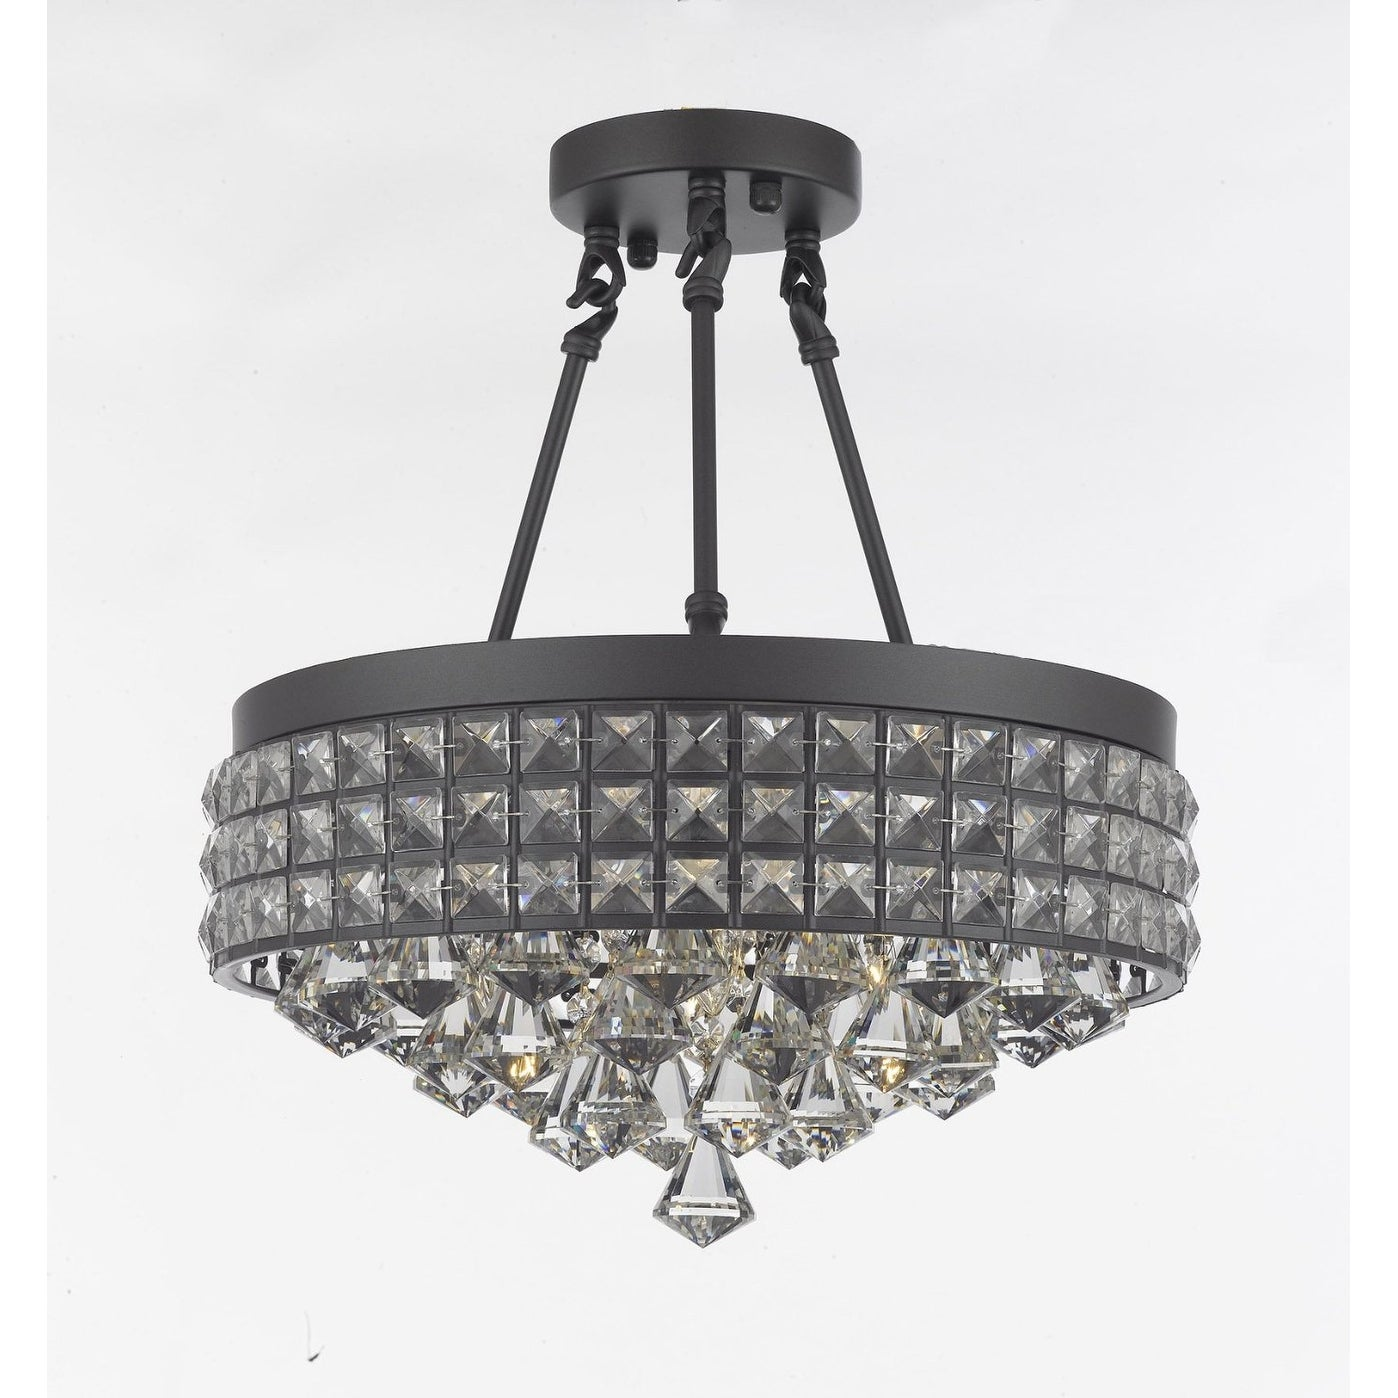 Semi Flush Mount French Empire Crystal Chandelier Crystal Iron